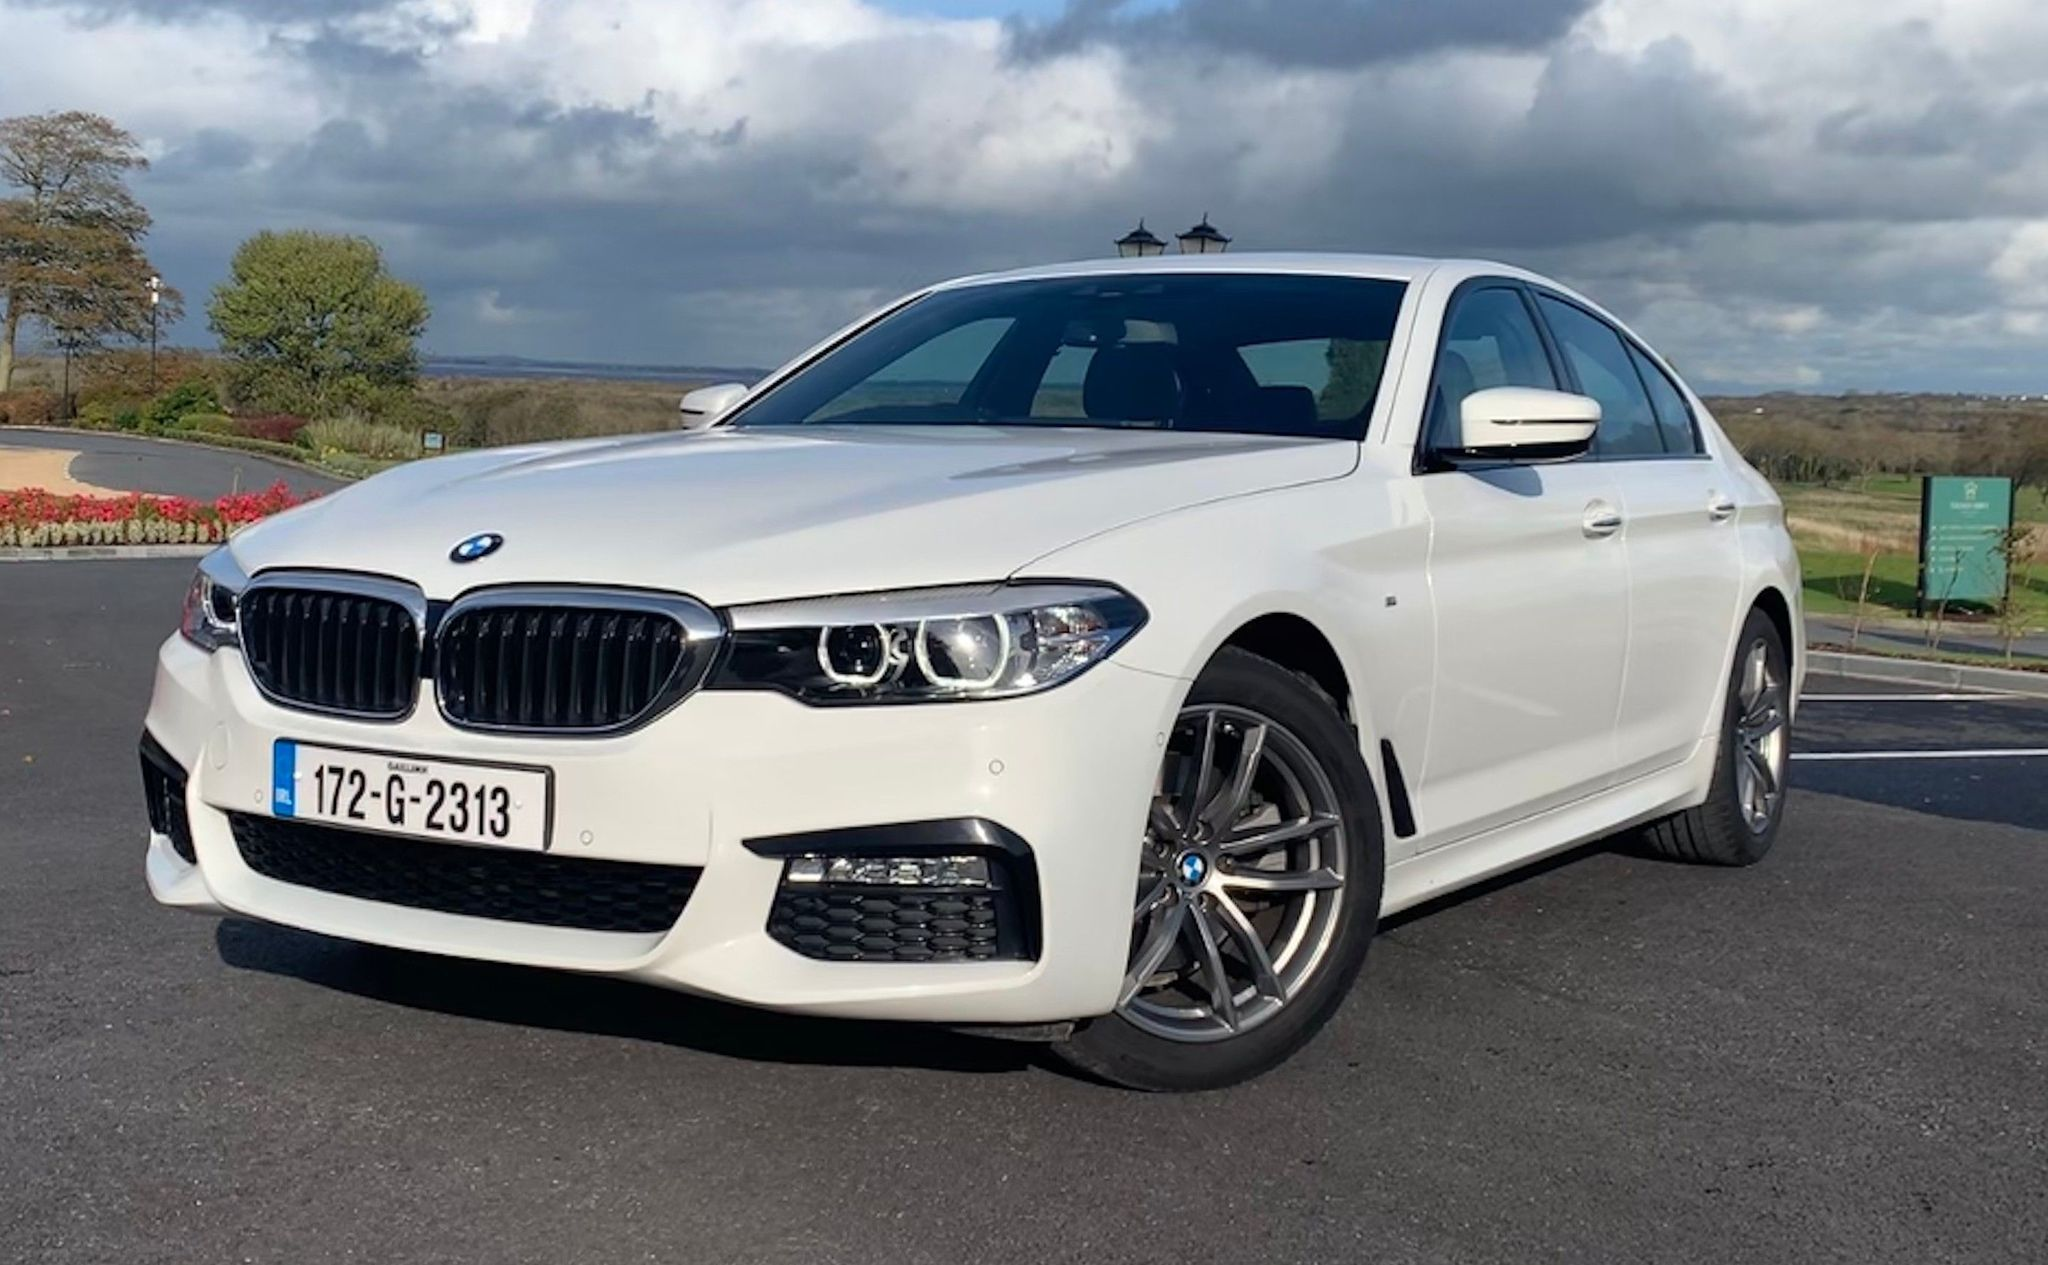 Used 2017 (172) BMW 5 Series M-Sport 520d in Galway